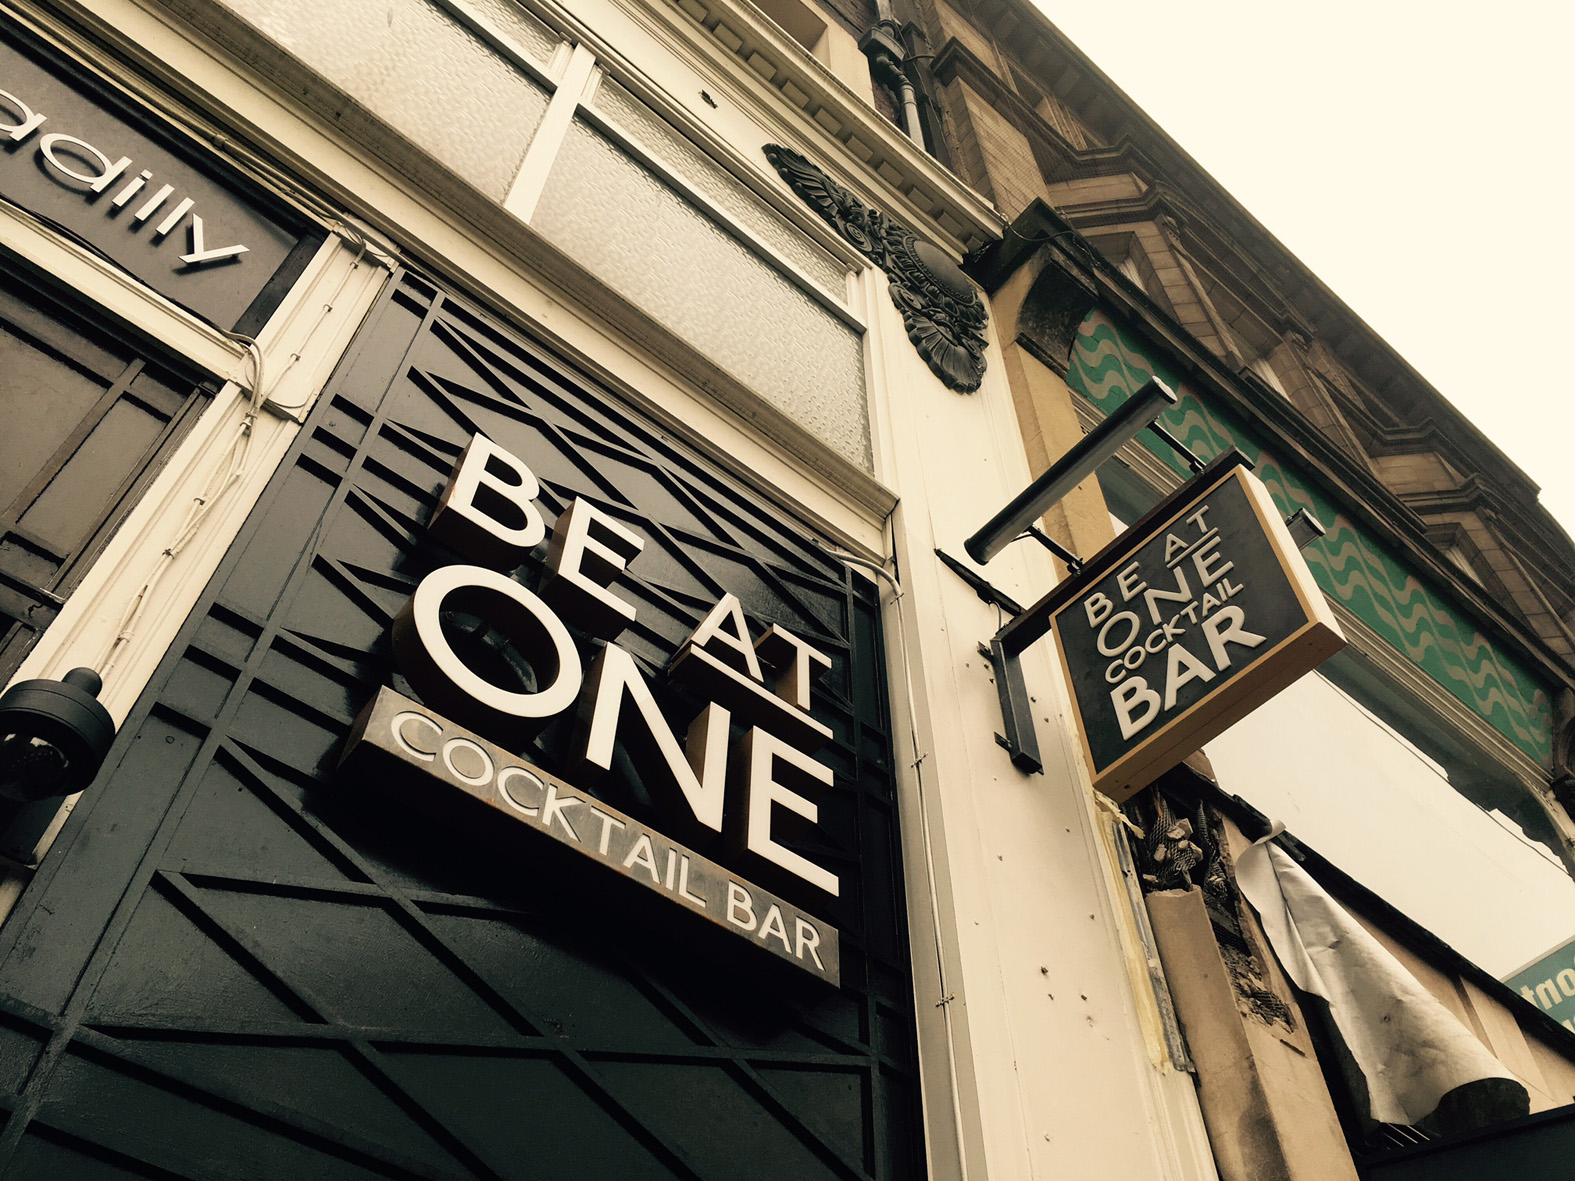 Be at One Birmingham